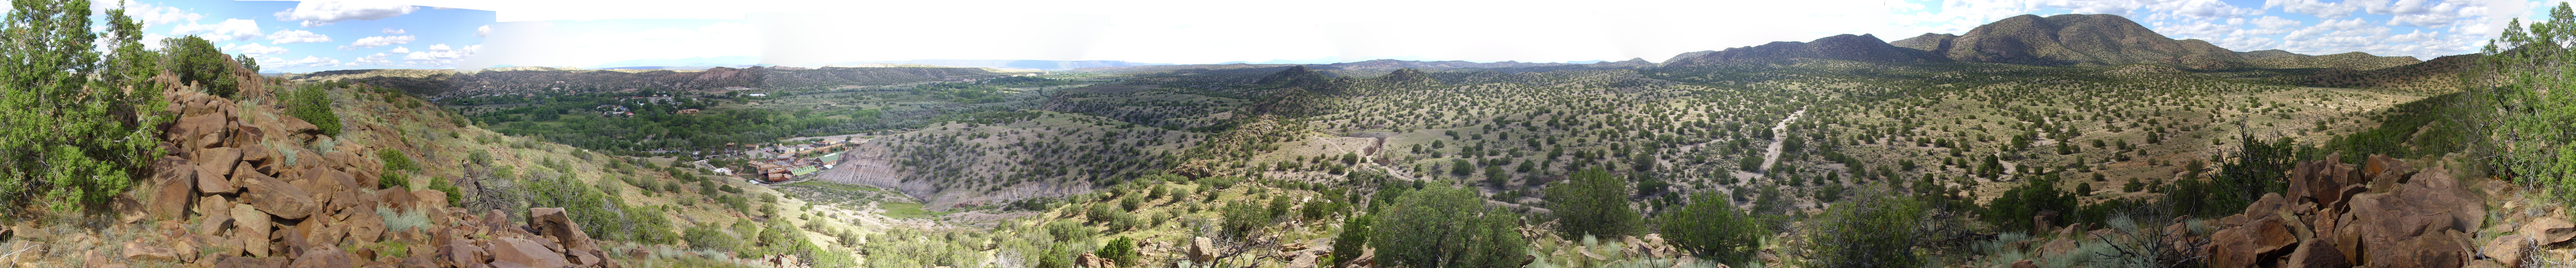 Panorama from         northwest of Ojo Caliente